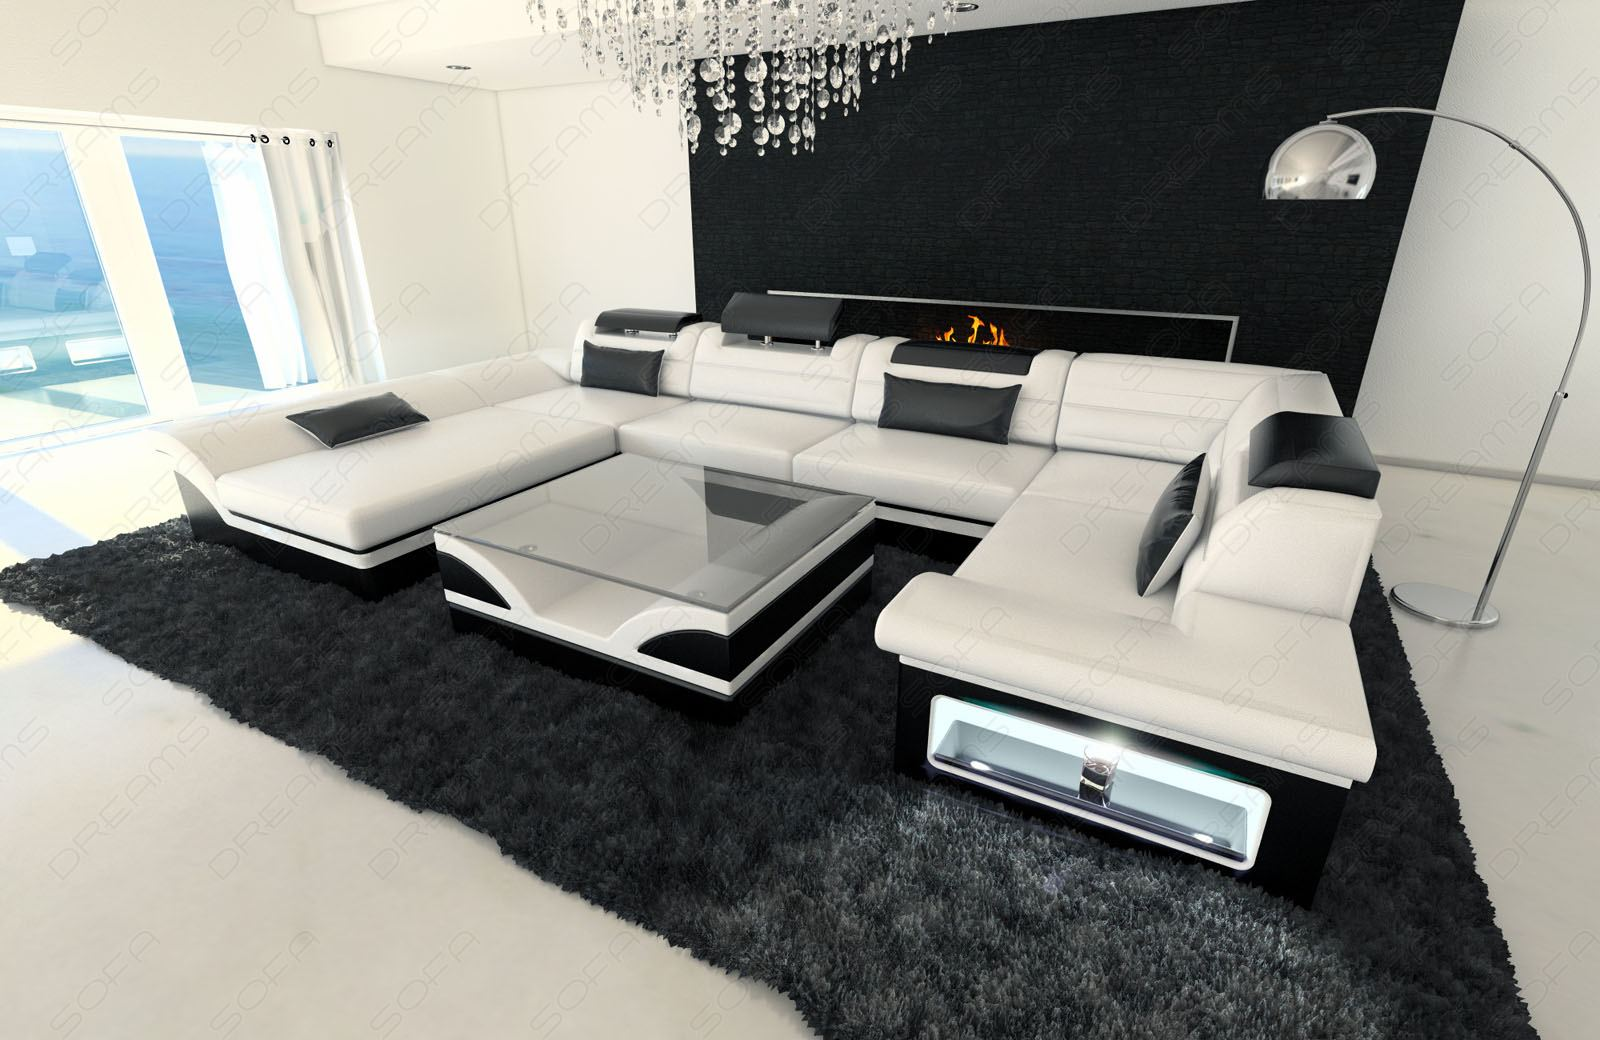 wohnlandschaft leder enzo u form design sofa luxuscouch mit led beleuchtung rgb ebay. Black Bedroom Furniture Sets. Home Design Ideas